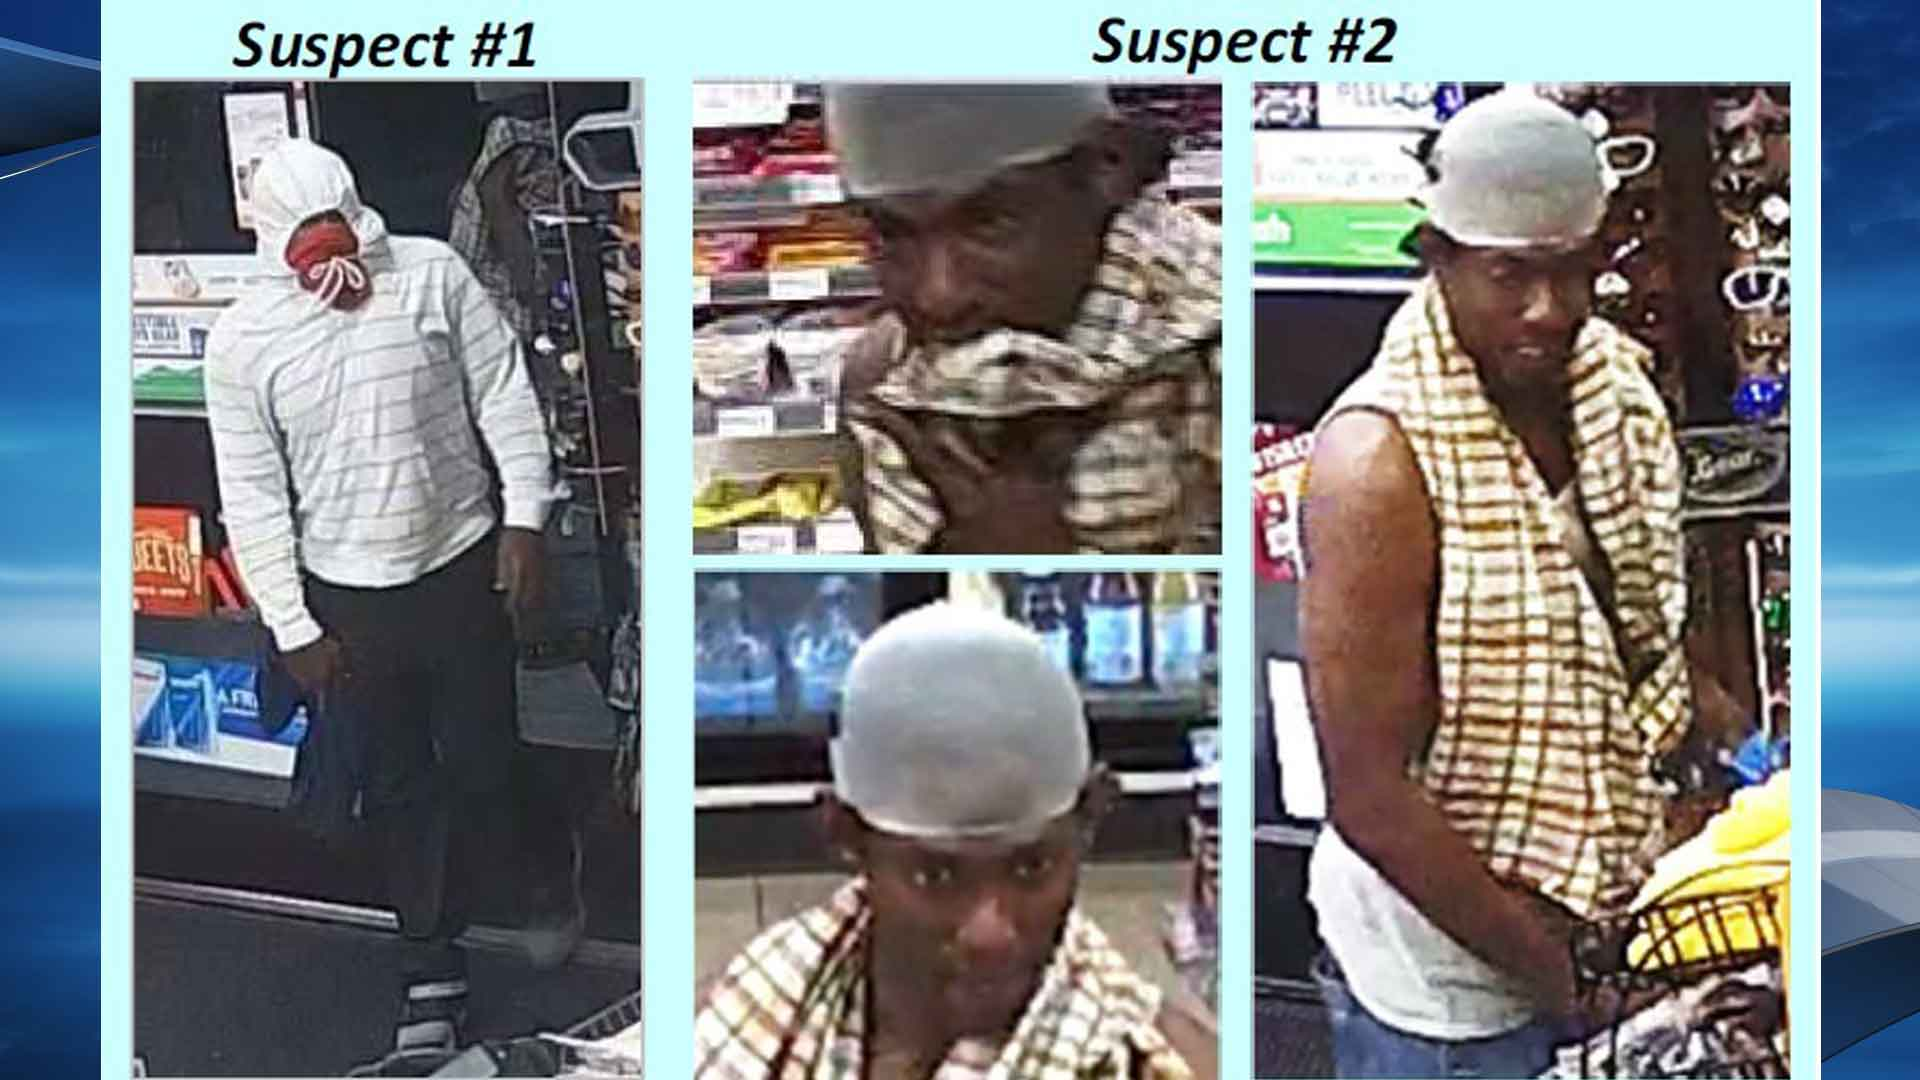 Police are asking for the public's help in identifying two men they say robbed an East Austin convenience store last month. (Photos courtesy: Austin Police Department)